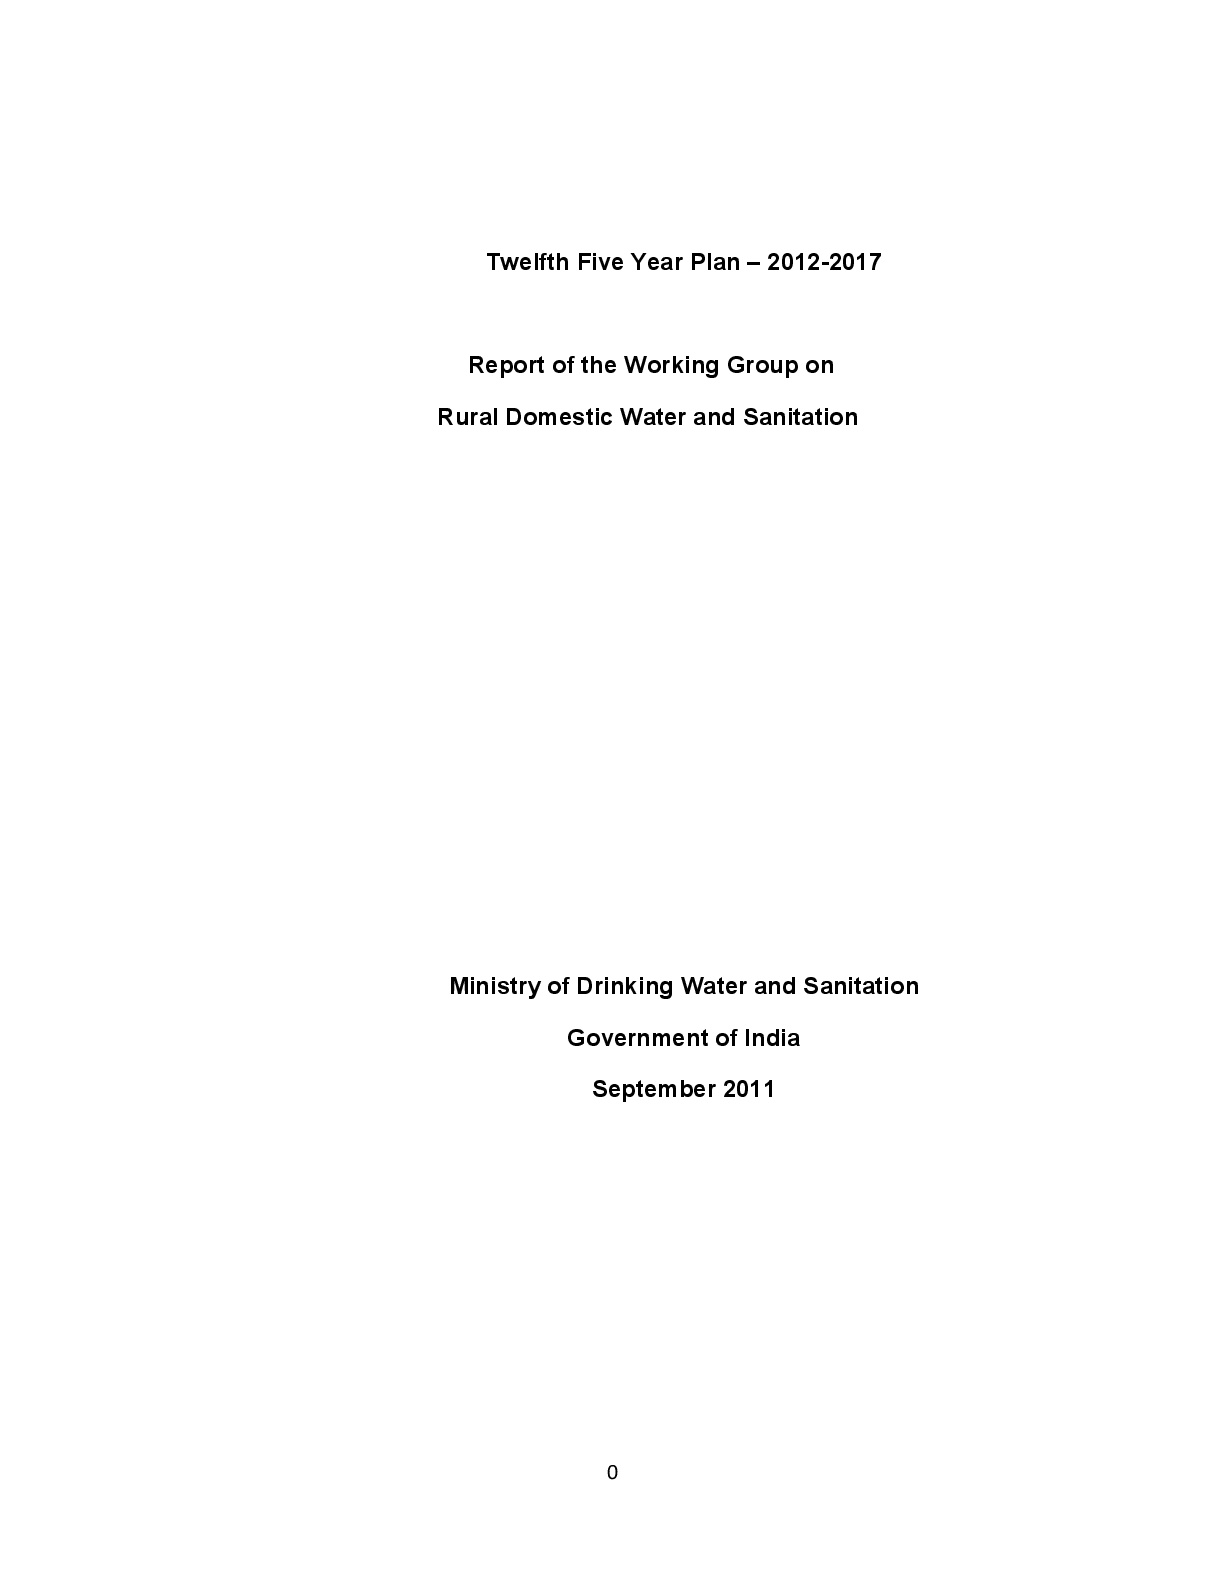 Report of the Working Group on Rural Domestic Water and Sanitation